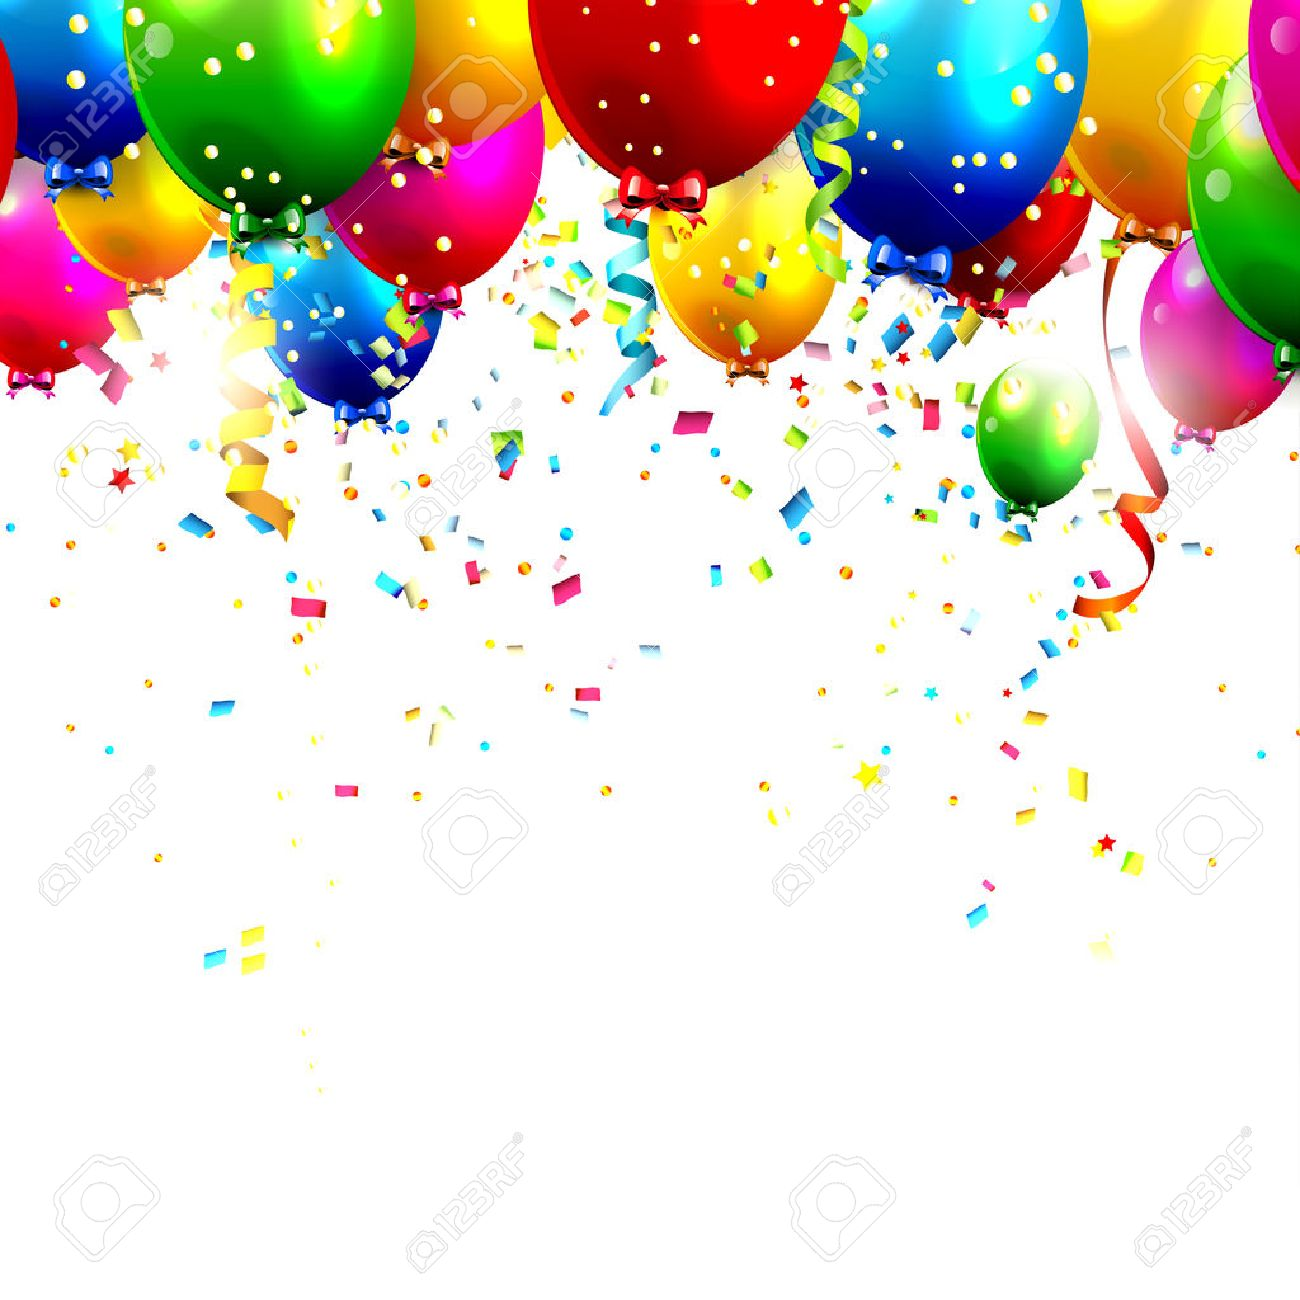 colorful birthday balloons and confetti royalty free cliparts